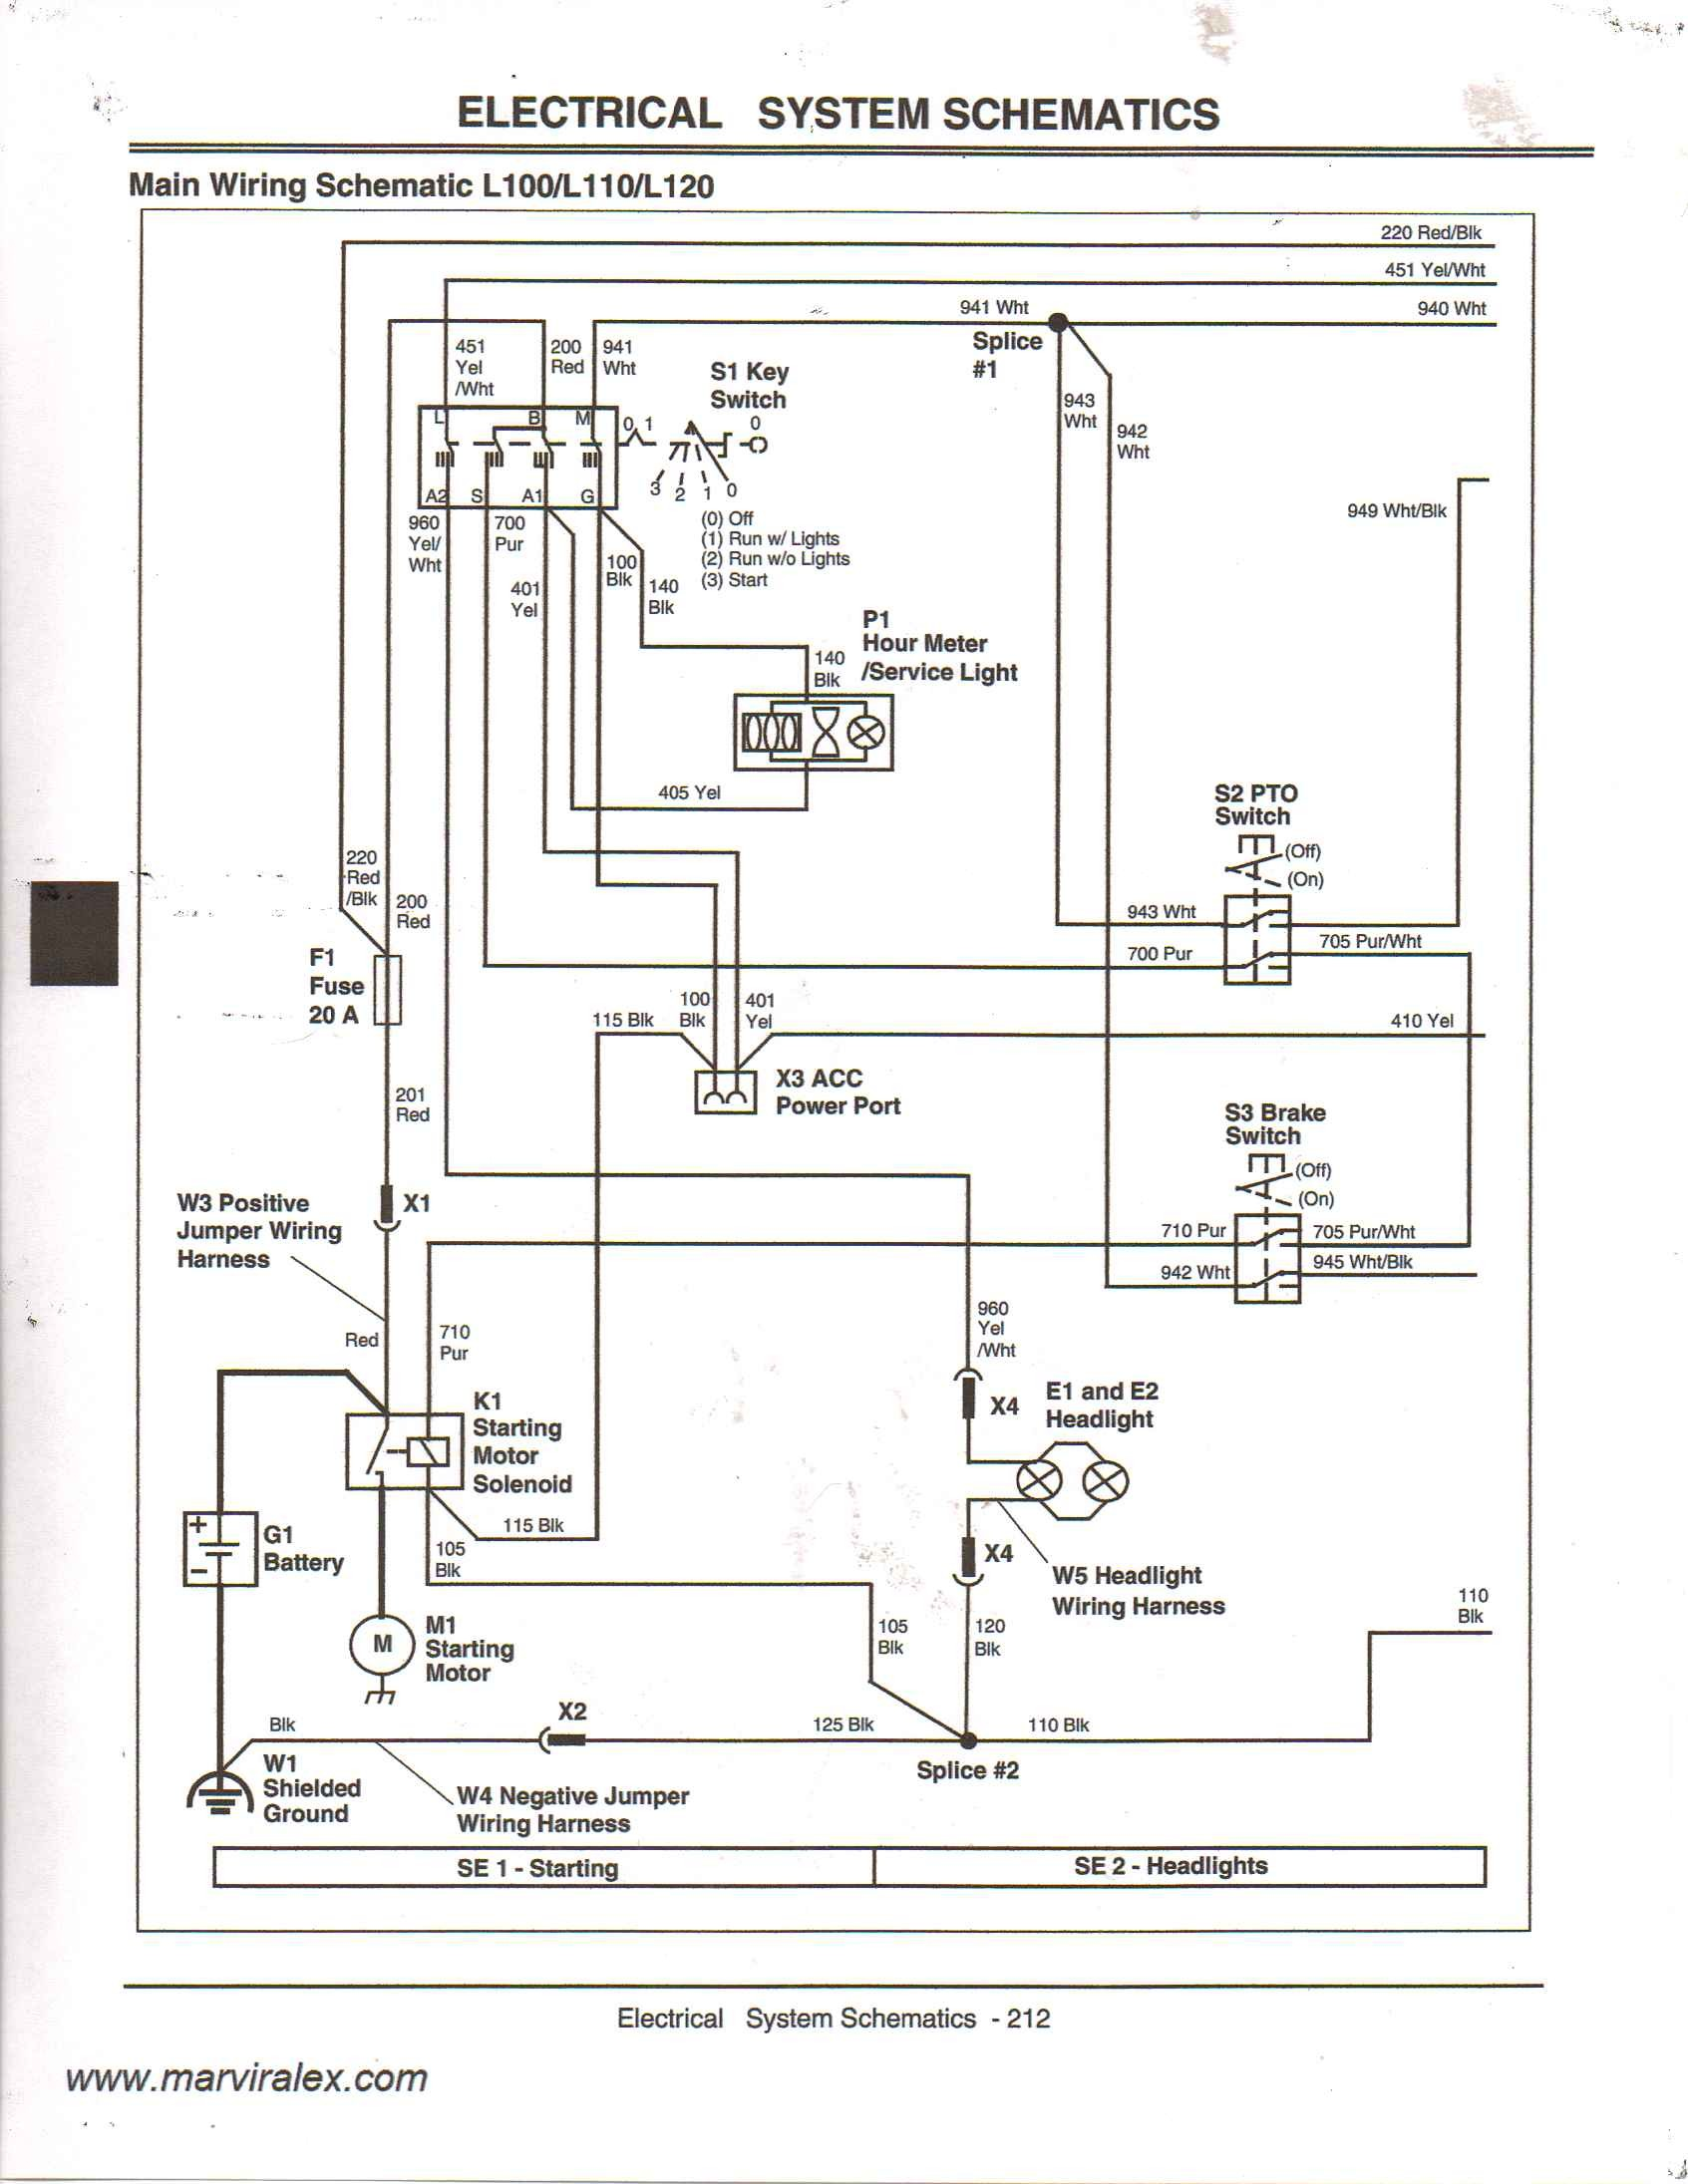 John Deere 4020 Wiring Diagram Cb 4290] for John Deere 1050 Tractor Wiring Diagram Of John Deere 4020 Wiring Diagram